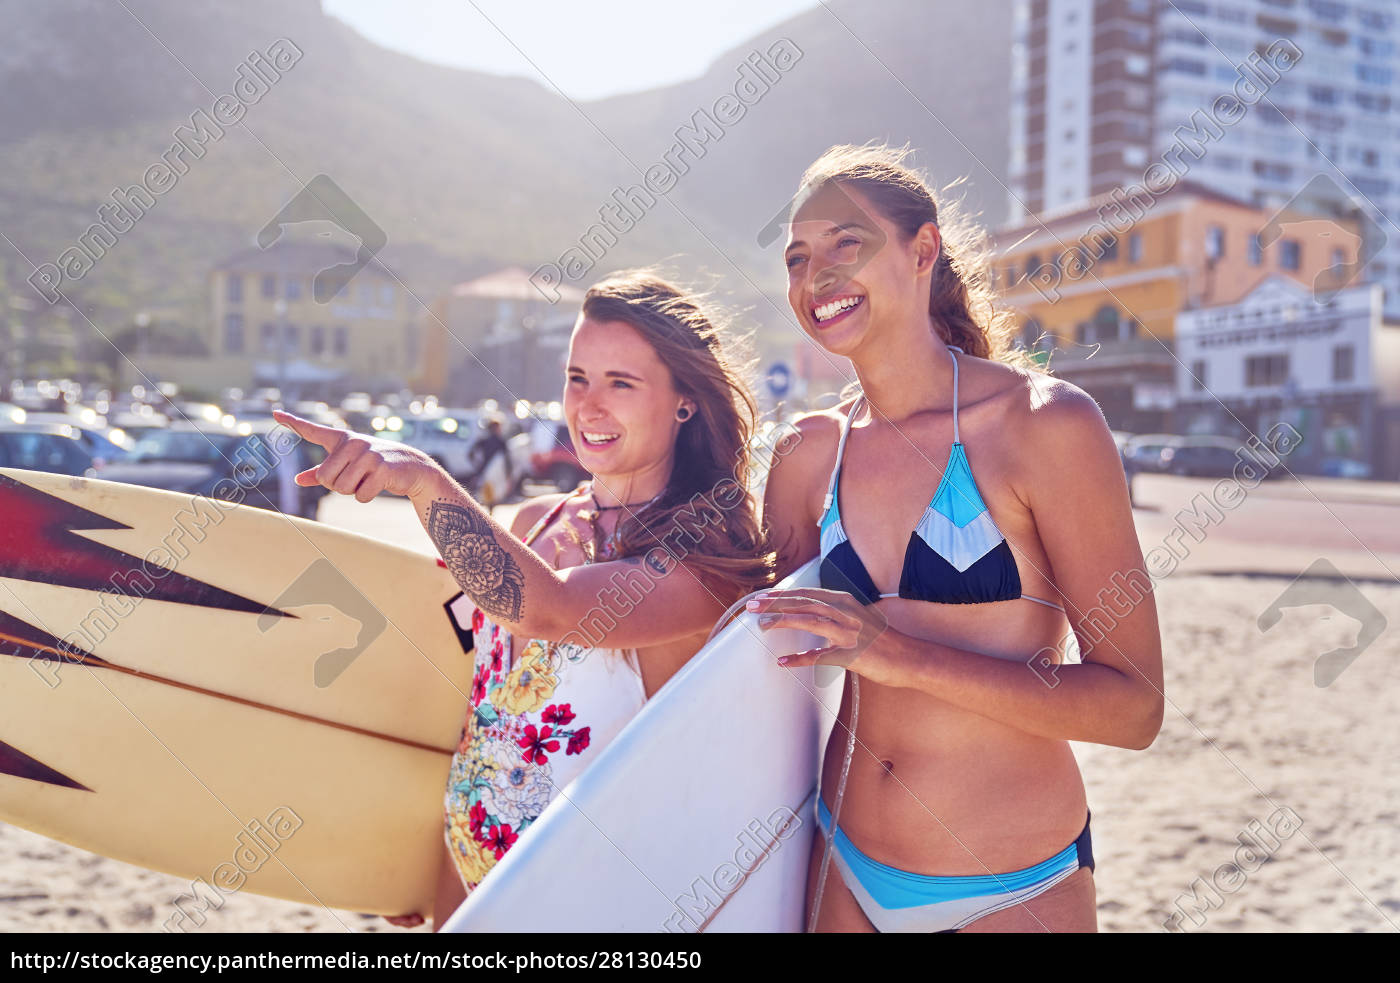 happy, young, women, female, surfers, with - 28130450